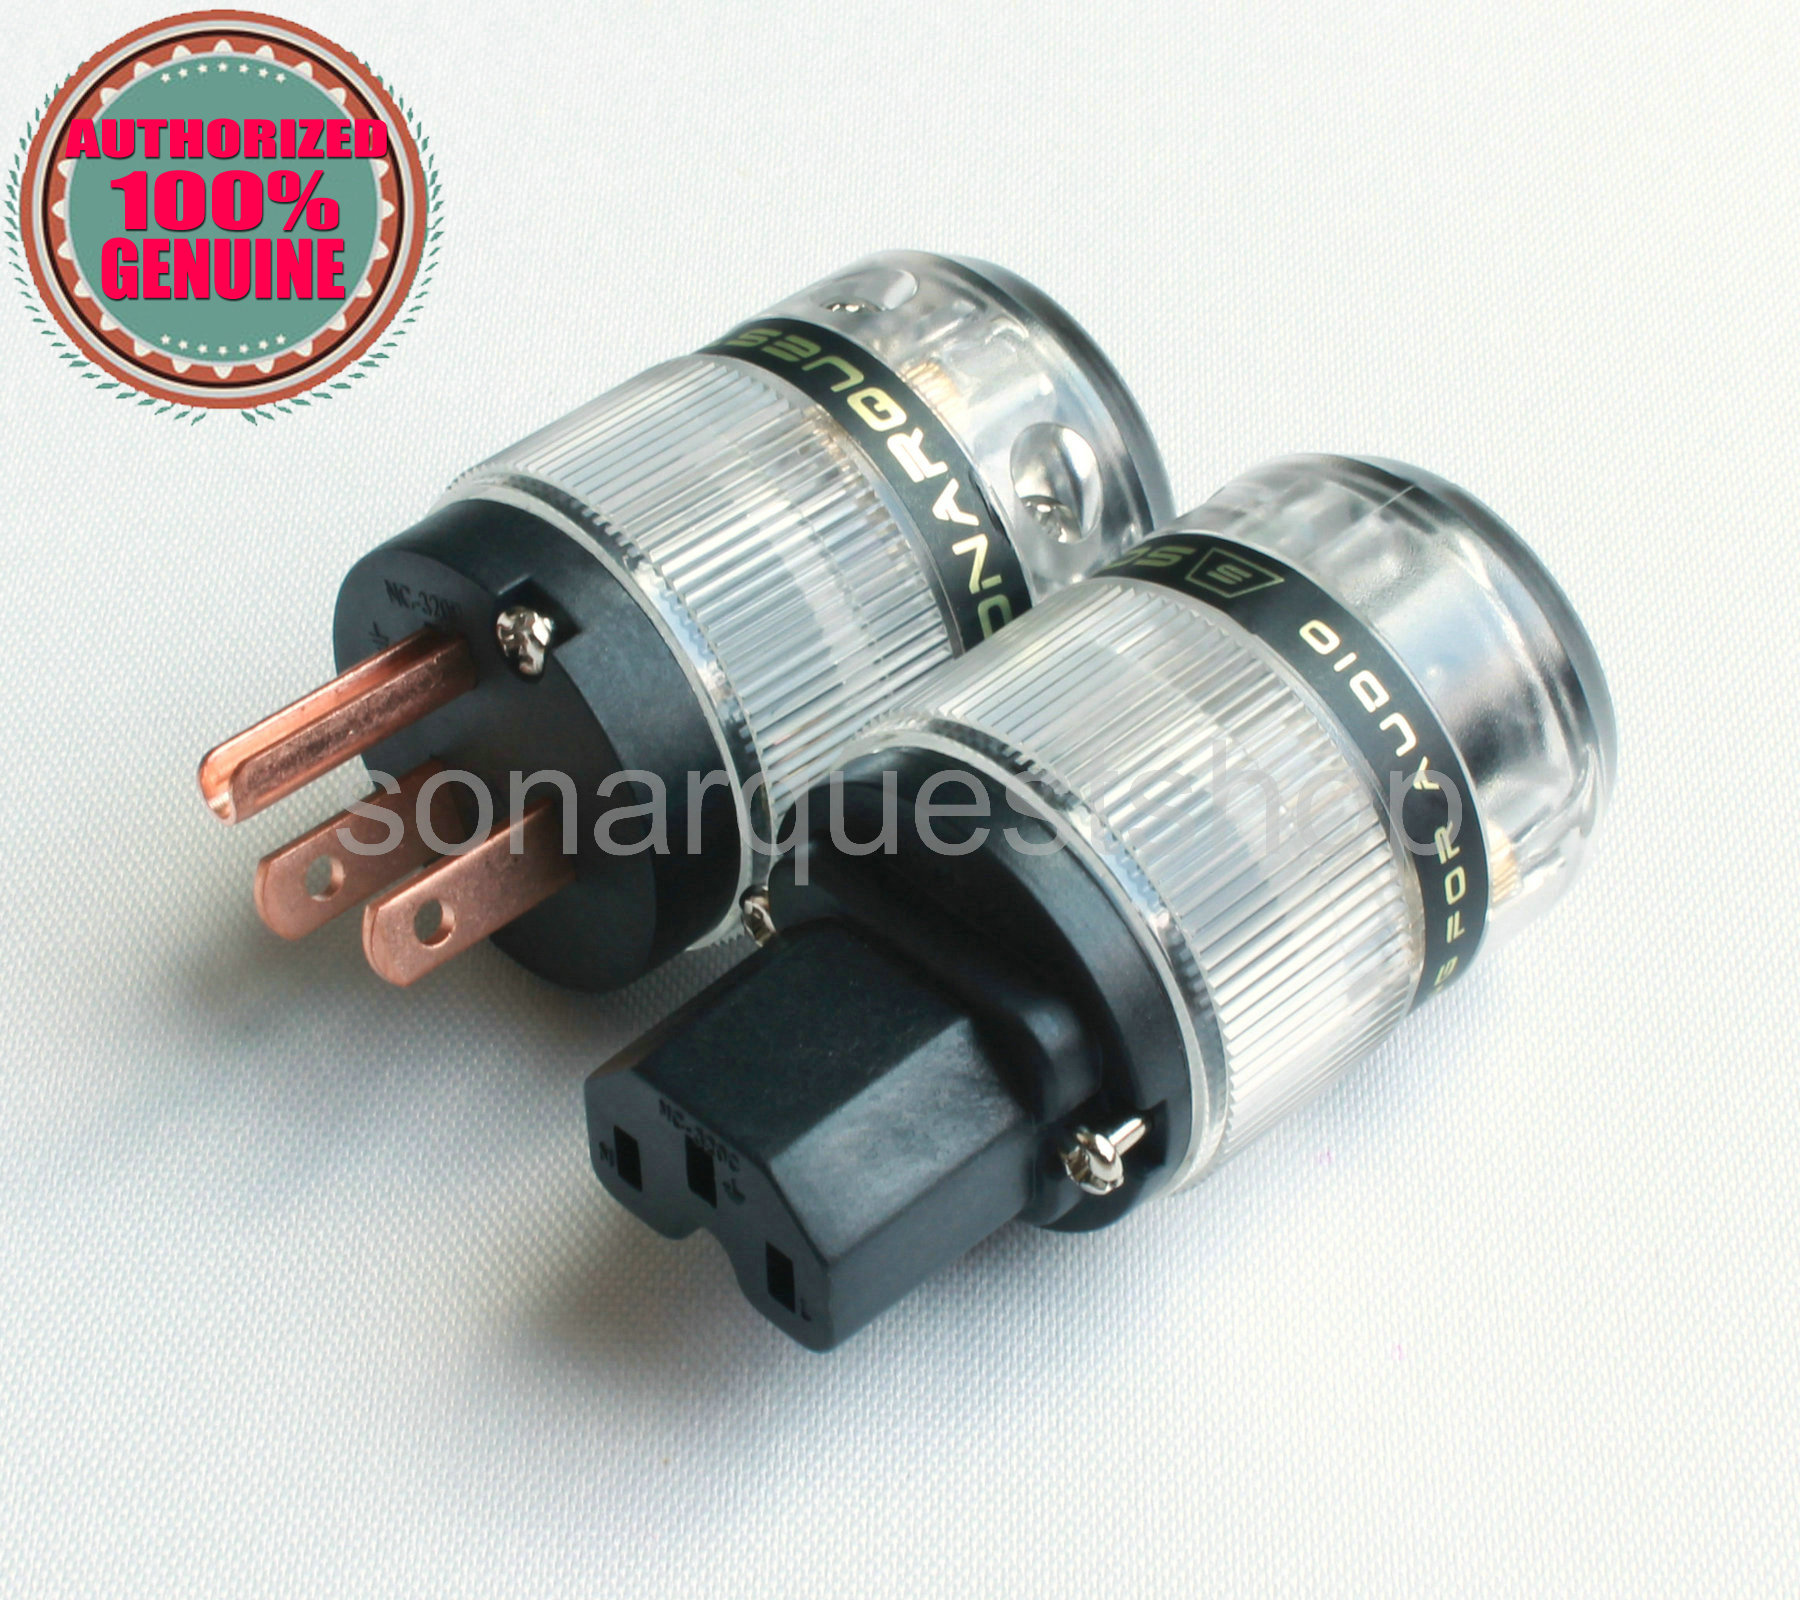 SONARQUEST ST-RP(B) + ST-RC(B) Red Copper Translucent Power Plug & IEC Connector